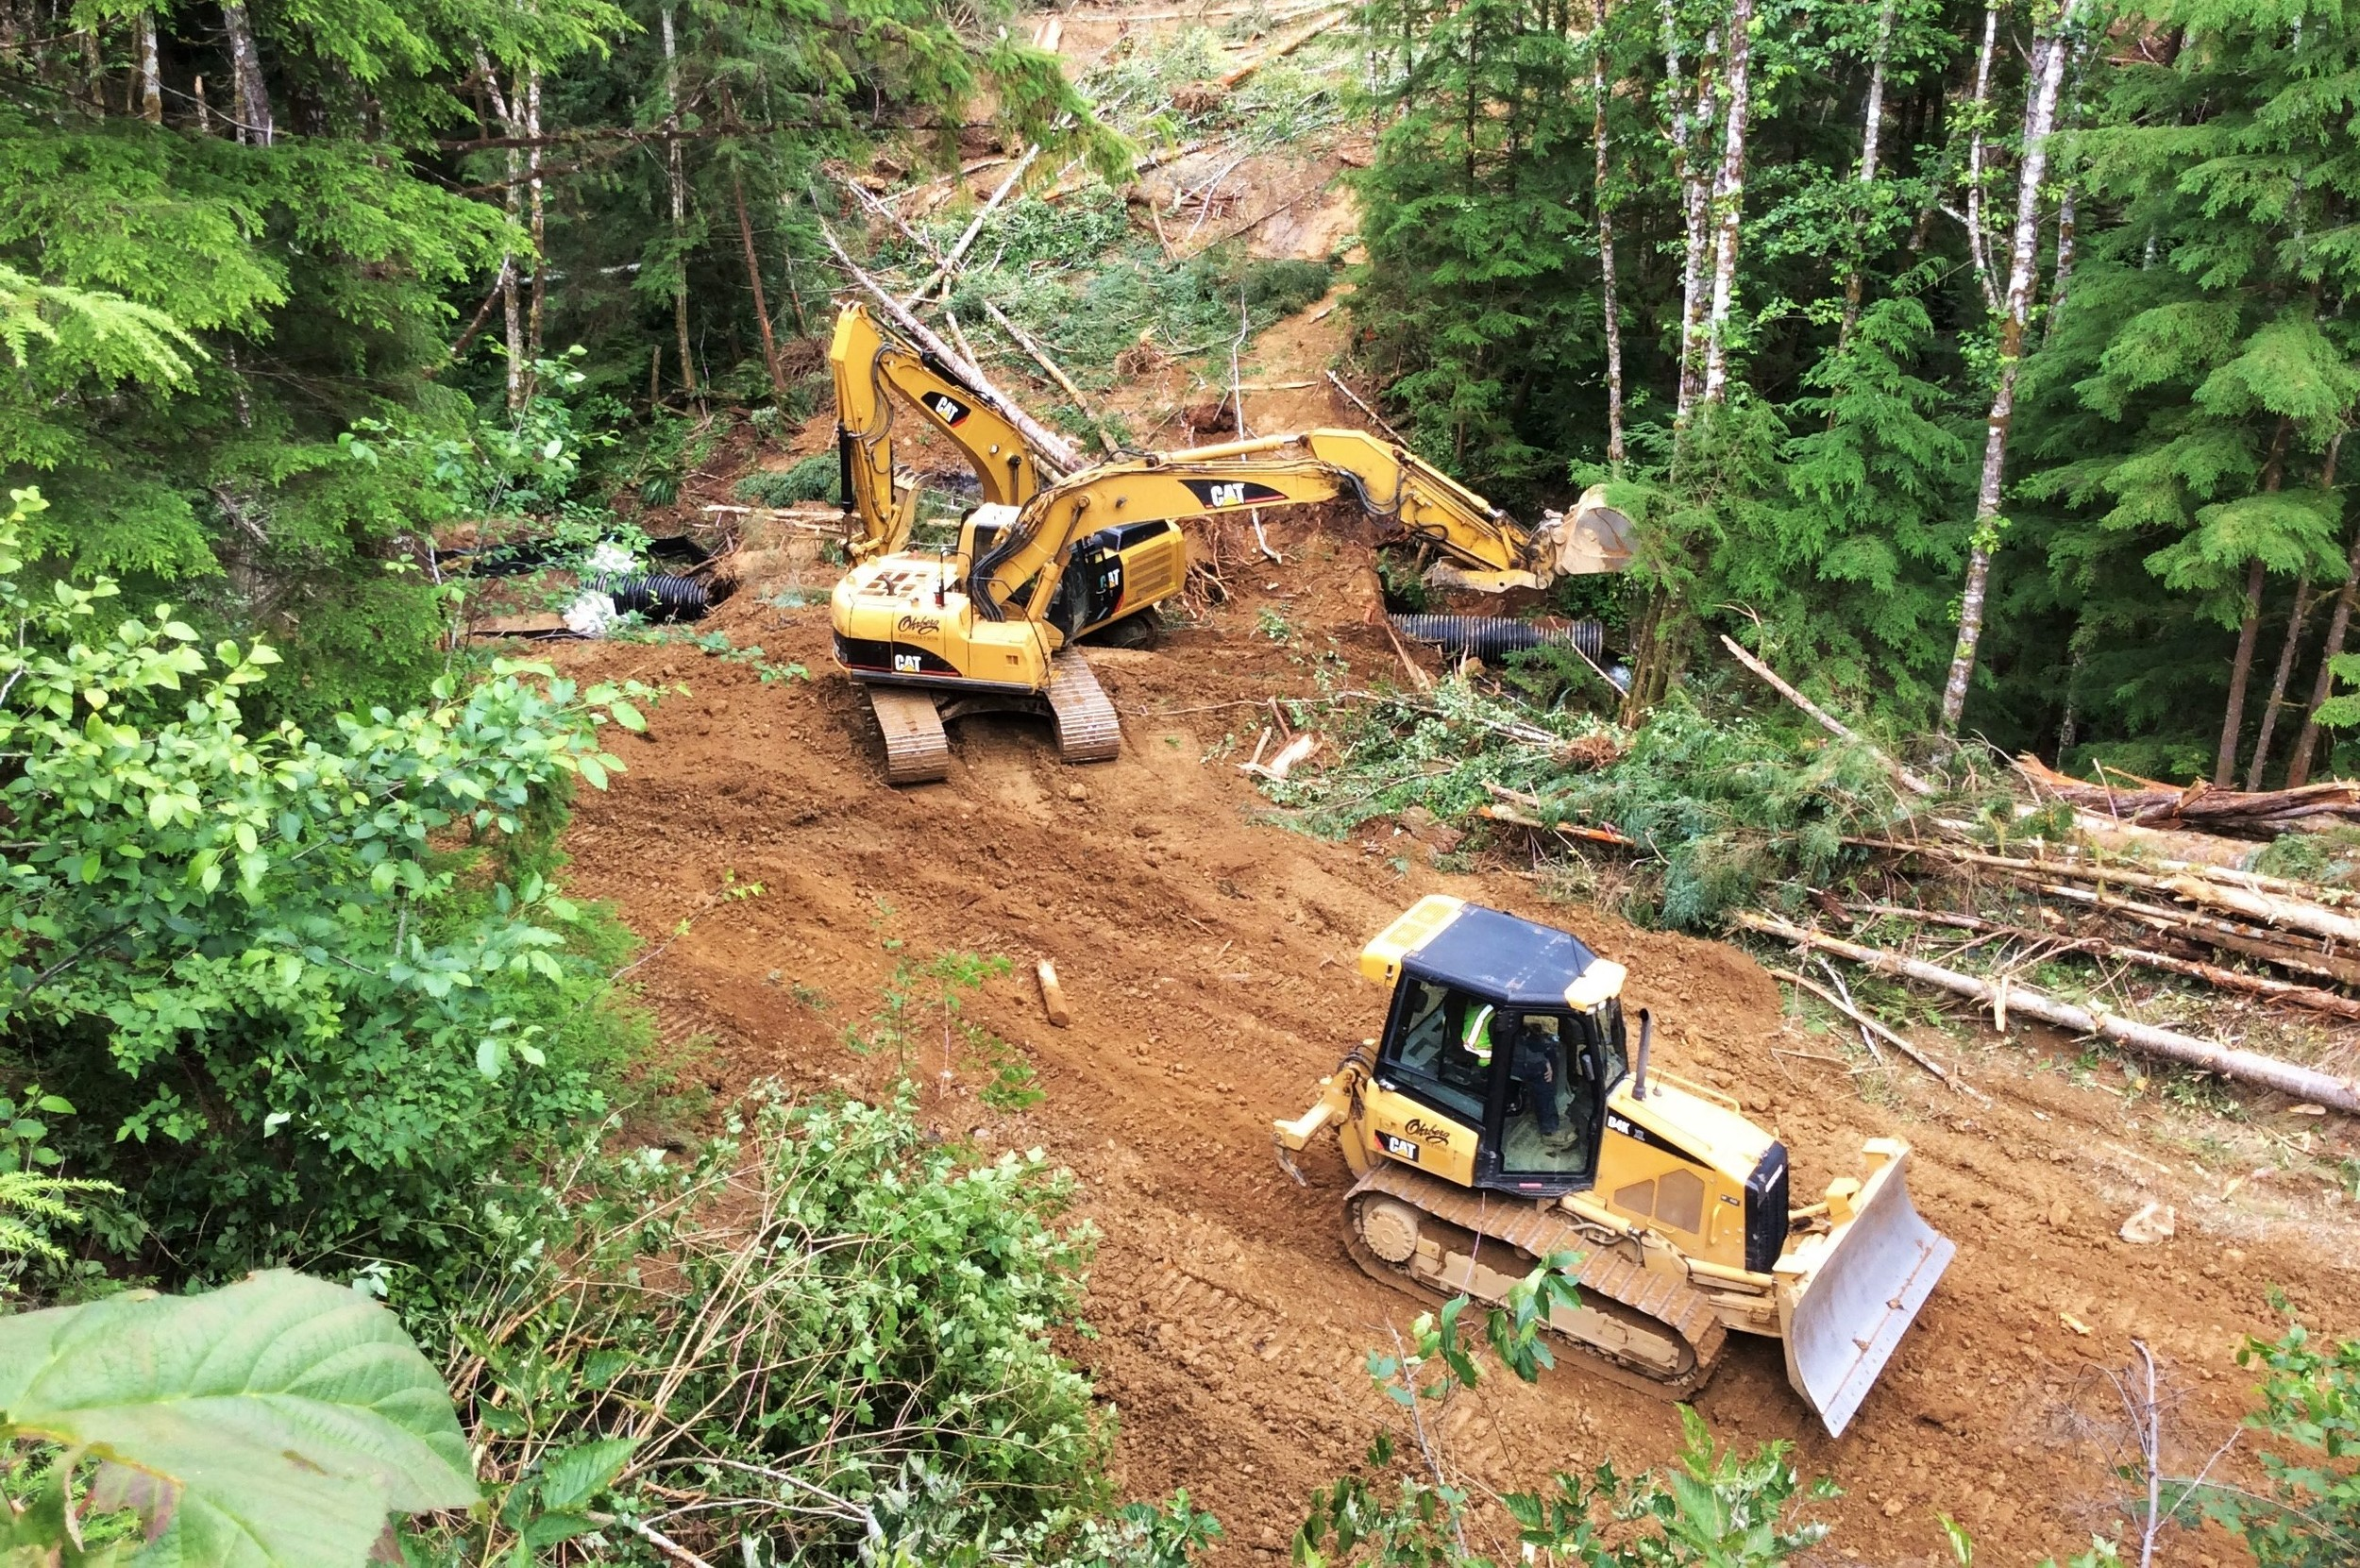 Two excavators, a bulldozer, and an off-road haul truck (not pictured) were used to do the work.